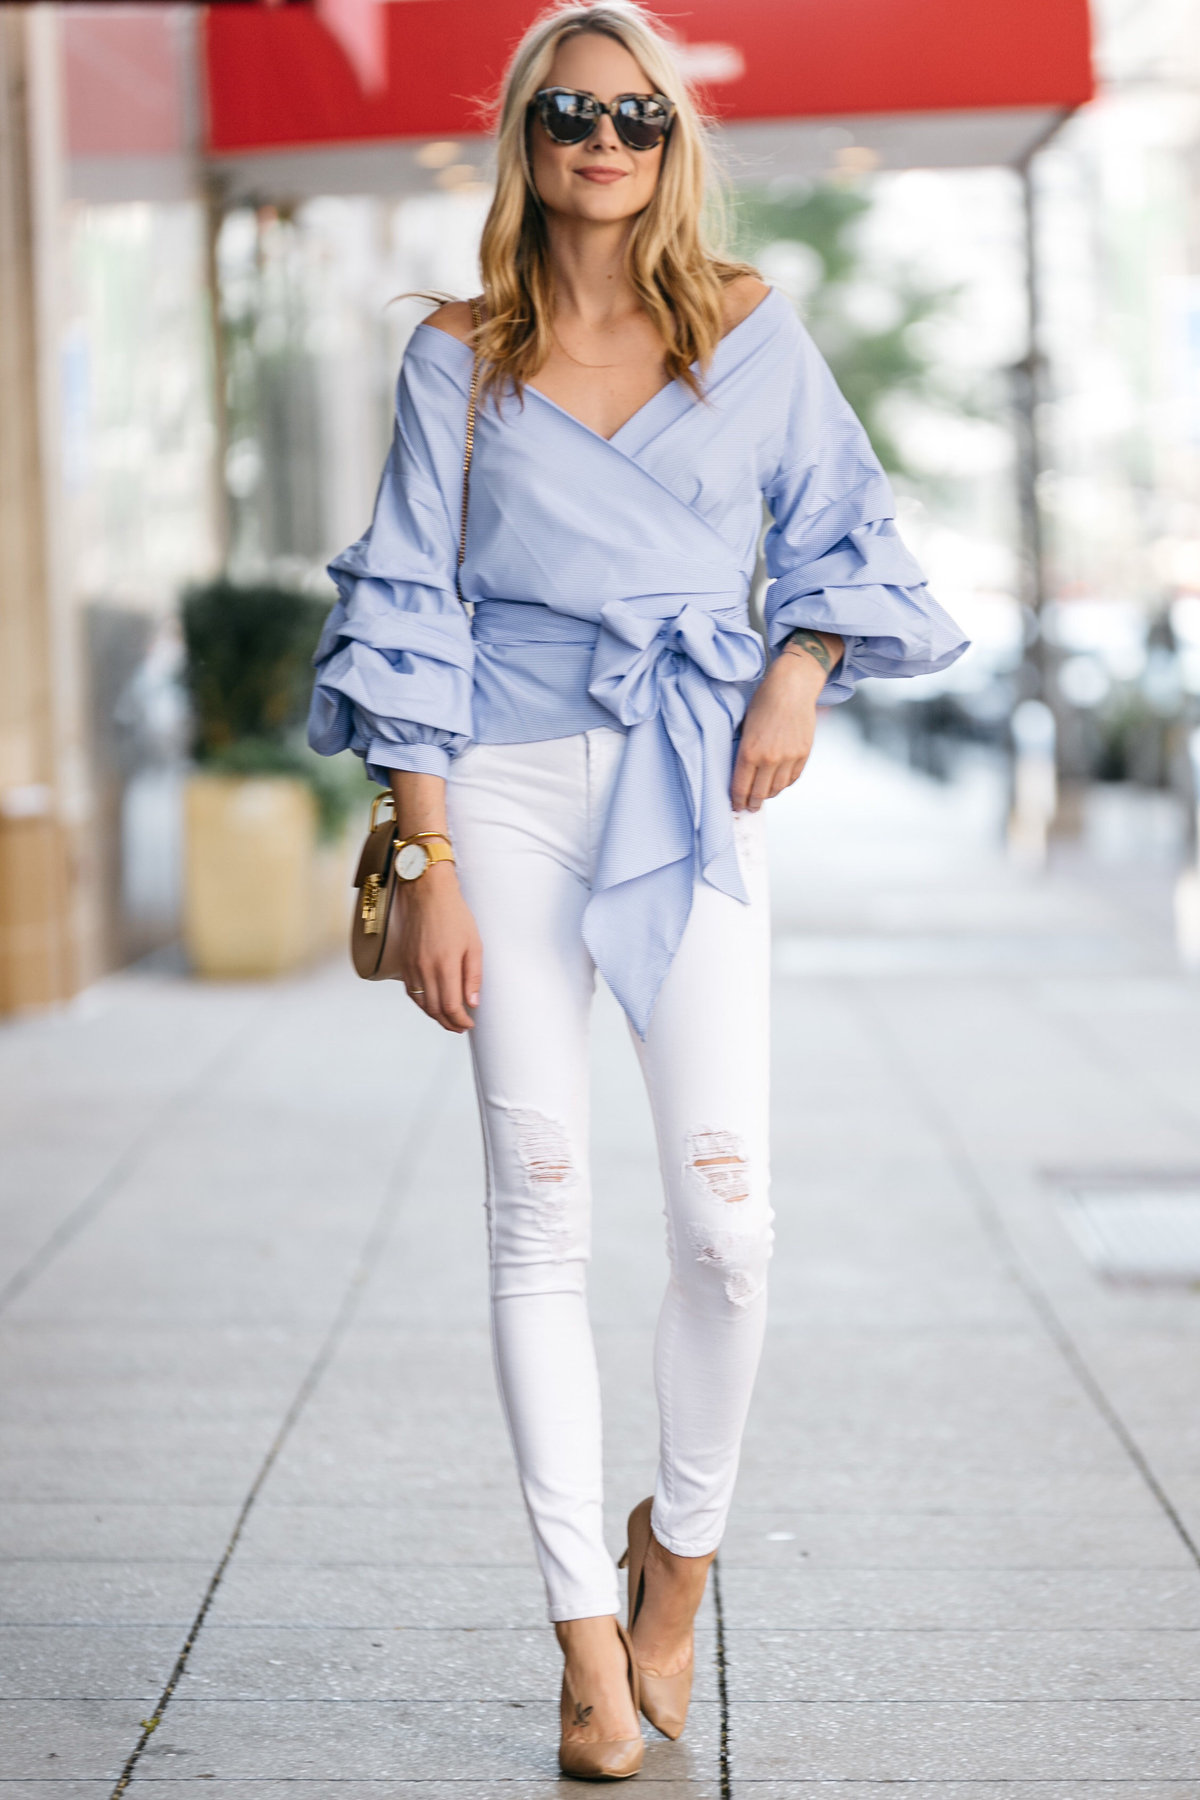 Fashion Jackson, Dallas Blogger, Fashion Blogger, Street Style, Blue Ruffle Sleeve Top, James Jeans White Skinny Jeans, Chloe Drew Blush Handbag, Nude Pumps